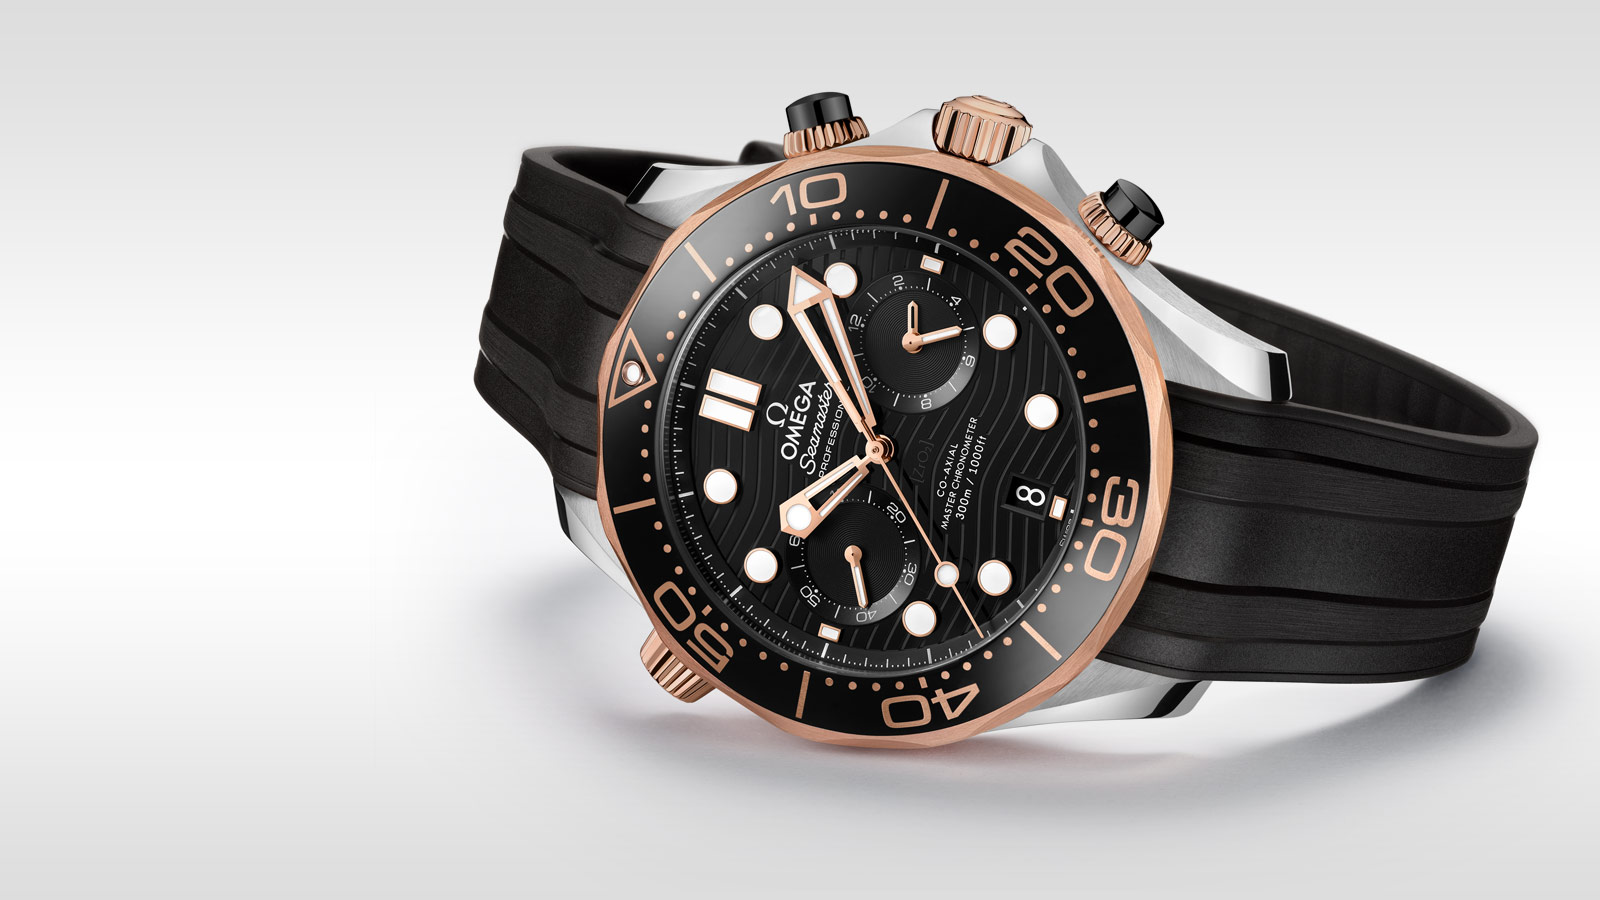 Seamaster Diver 300 M Diver 300M Chronographe Omega Co‑Axial Master Chronometer 44 mm - 210.22.44.51.01.001 - Afficher 2